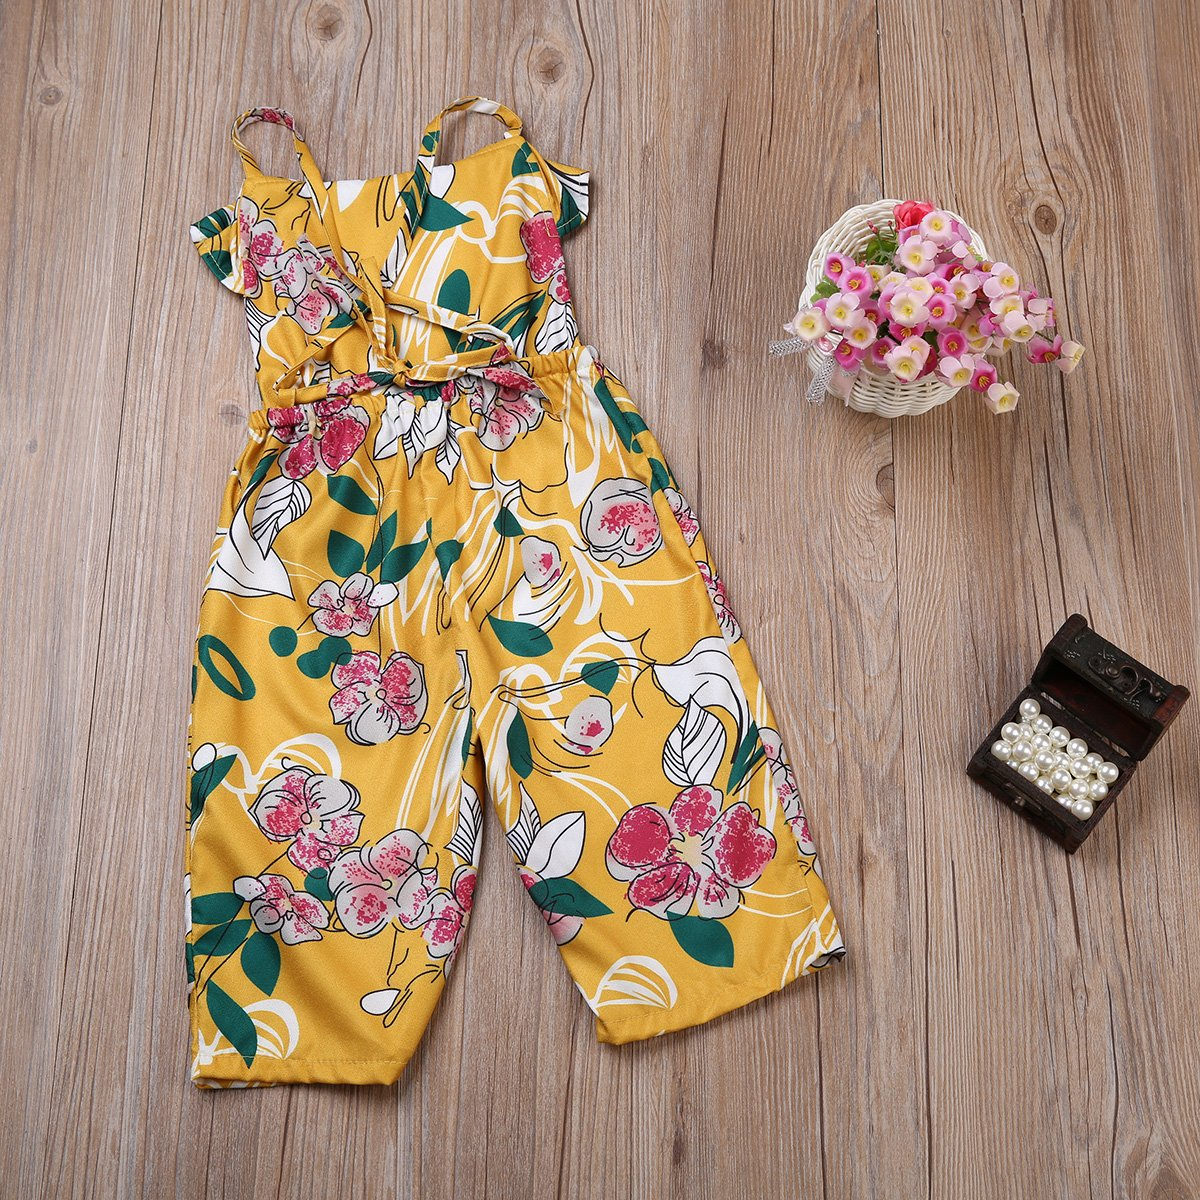 2-7T Toddler Kids Floral Jumpsuit Romper Sleeveless Ruffle Overalls Strap Pants Outfits